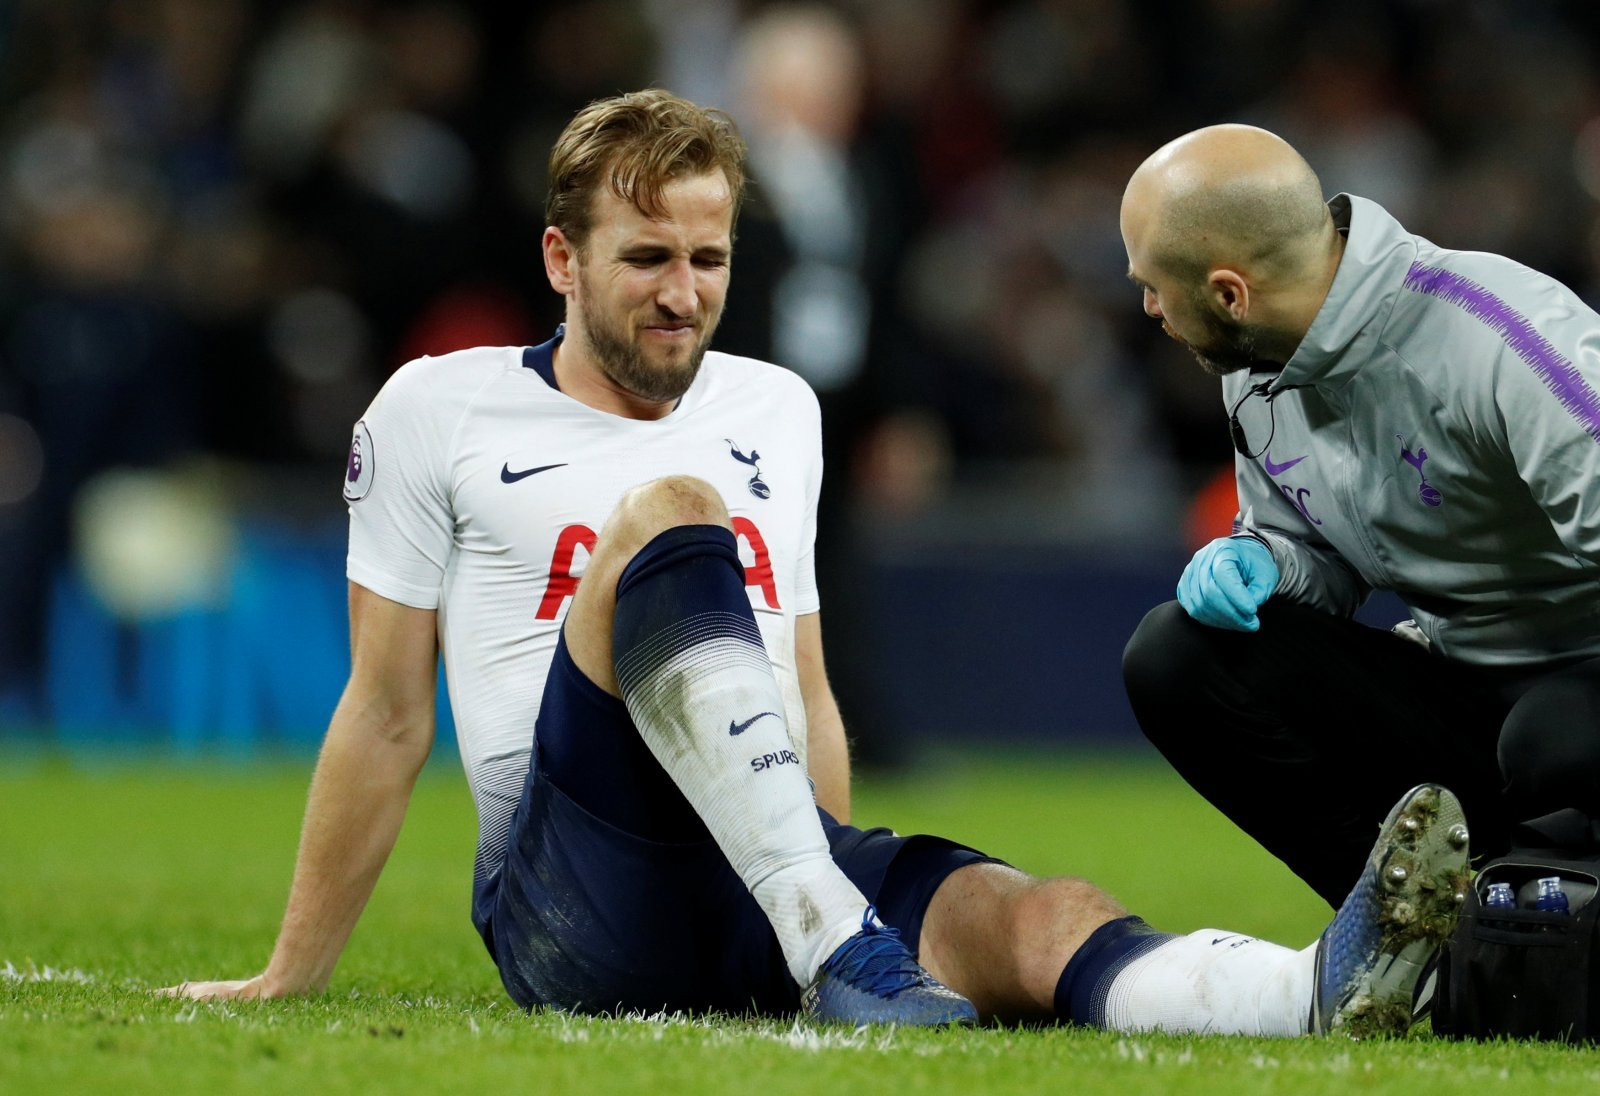 Tottenham fans take to Twitter to call for patience as Kane nears return